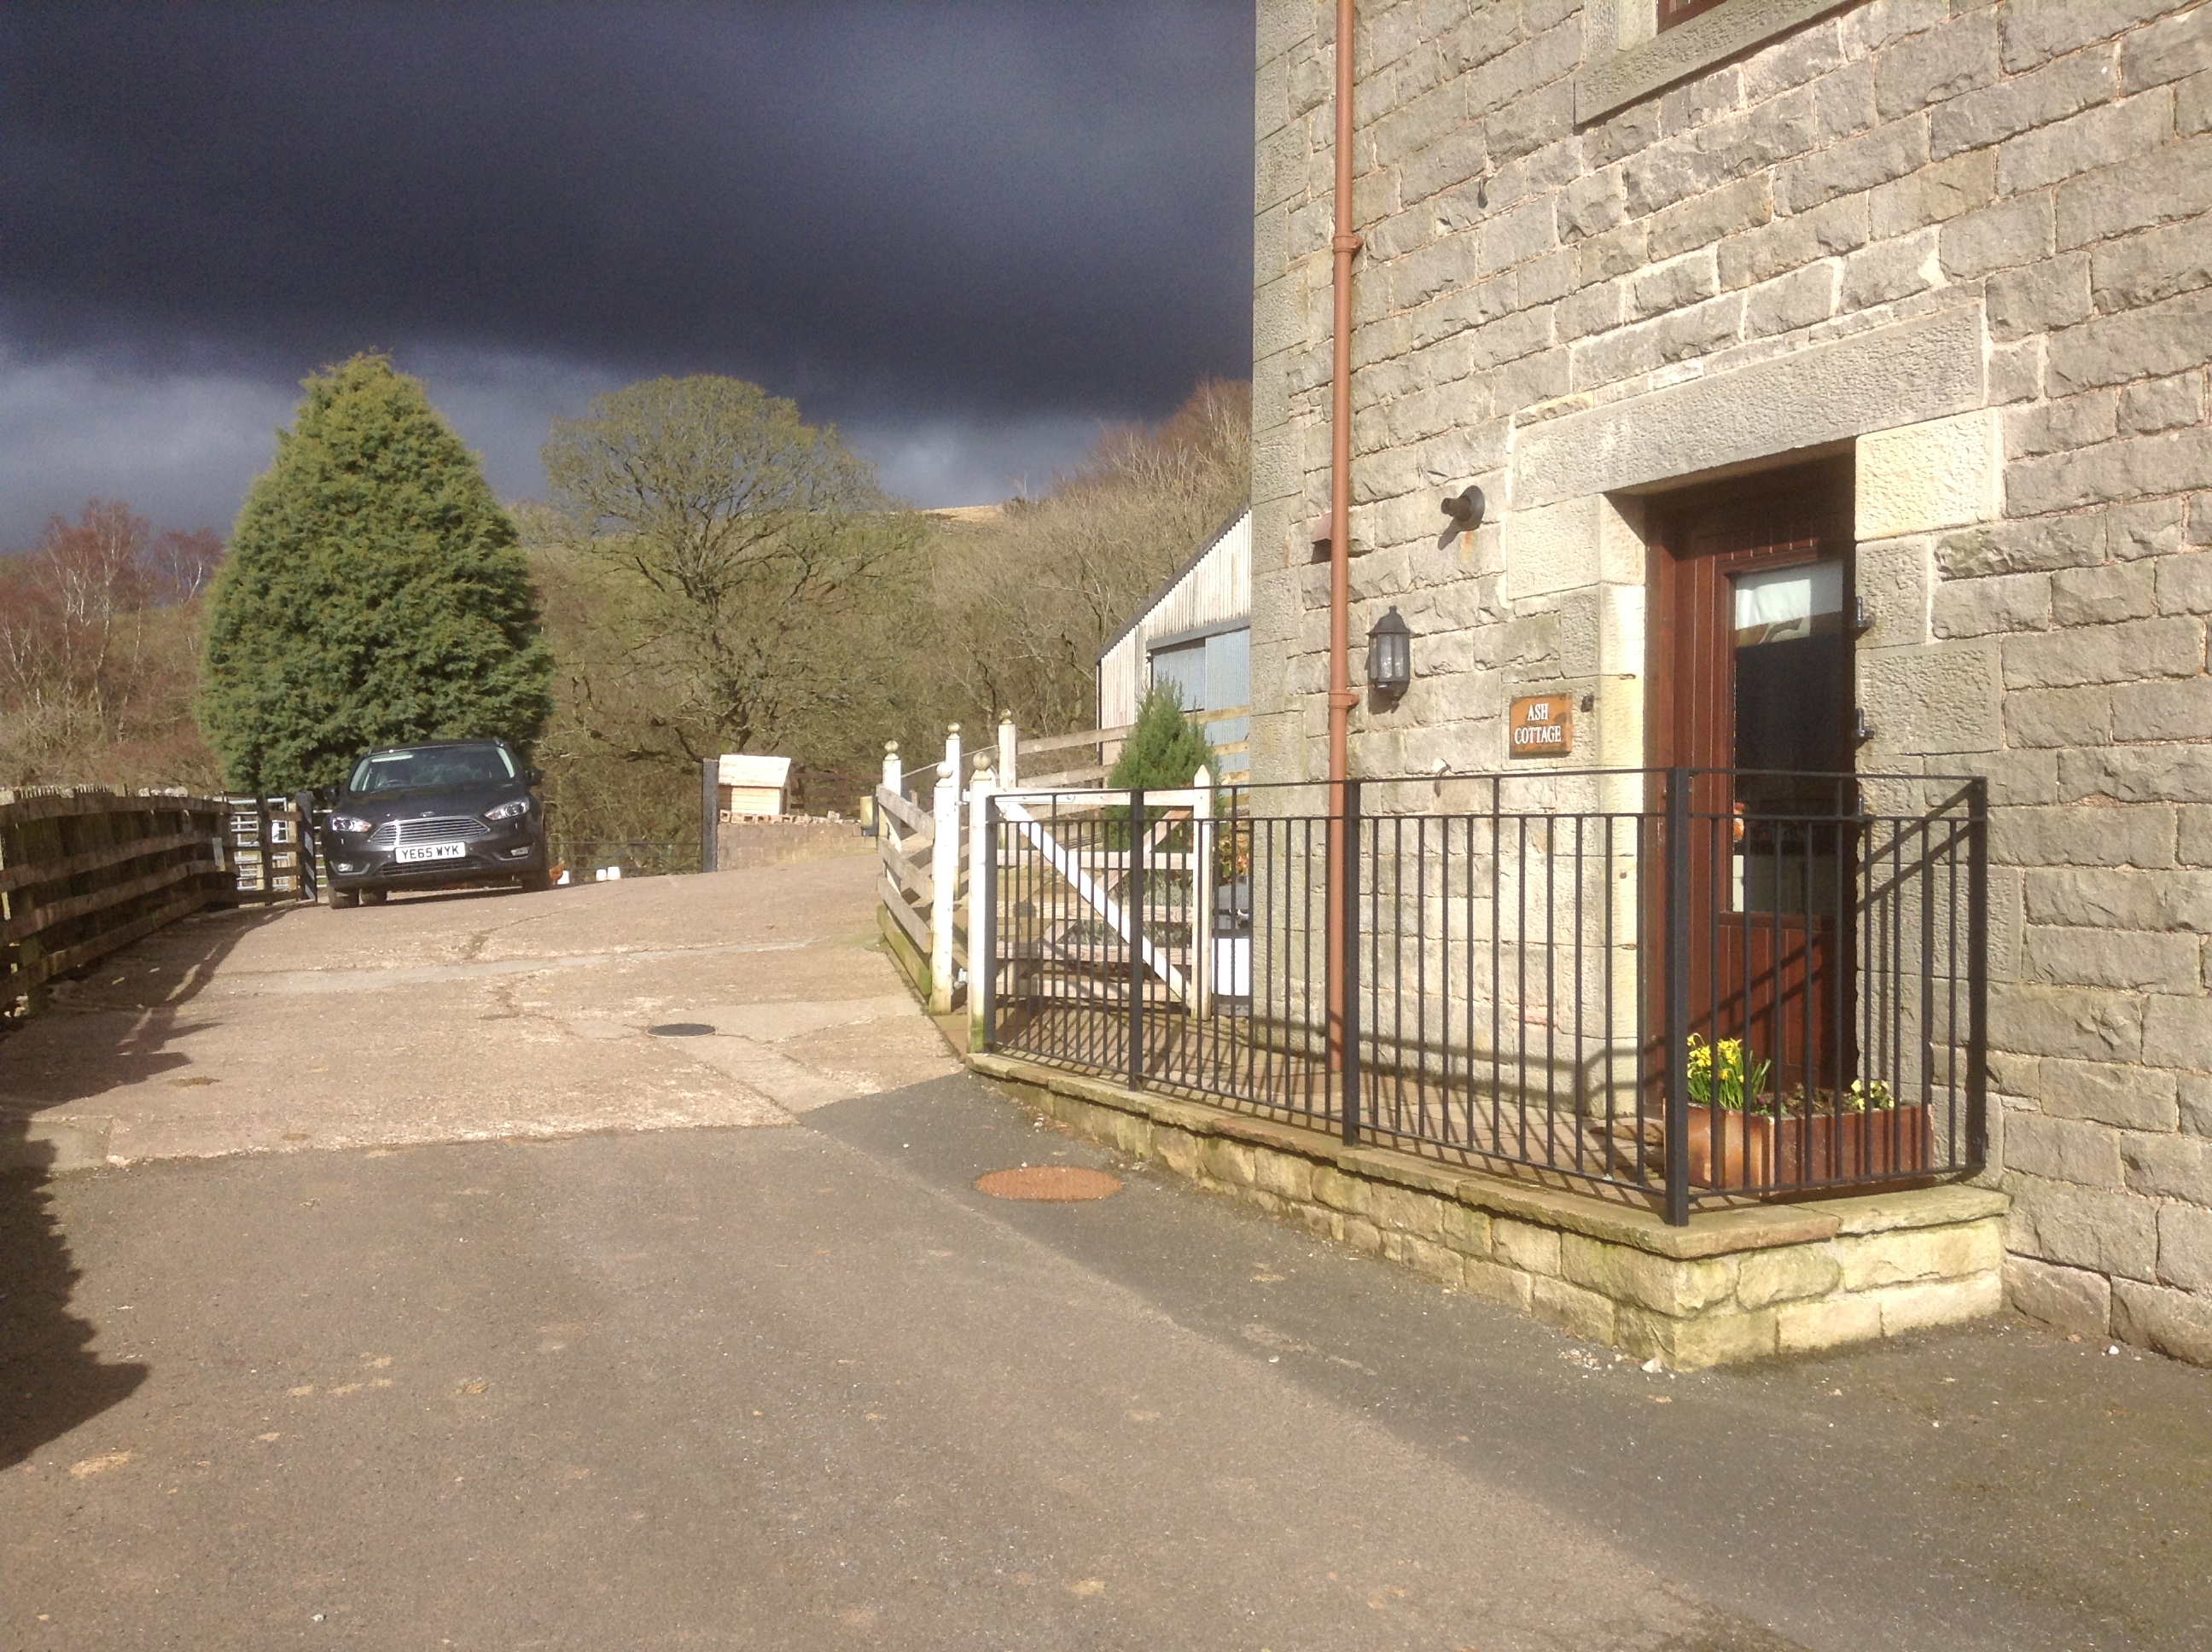 Parking space and entrance to Ash Cottage